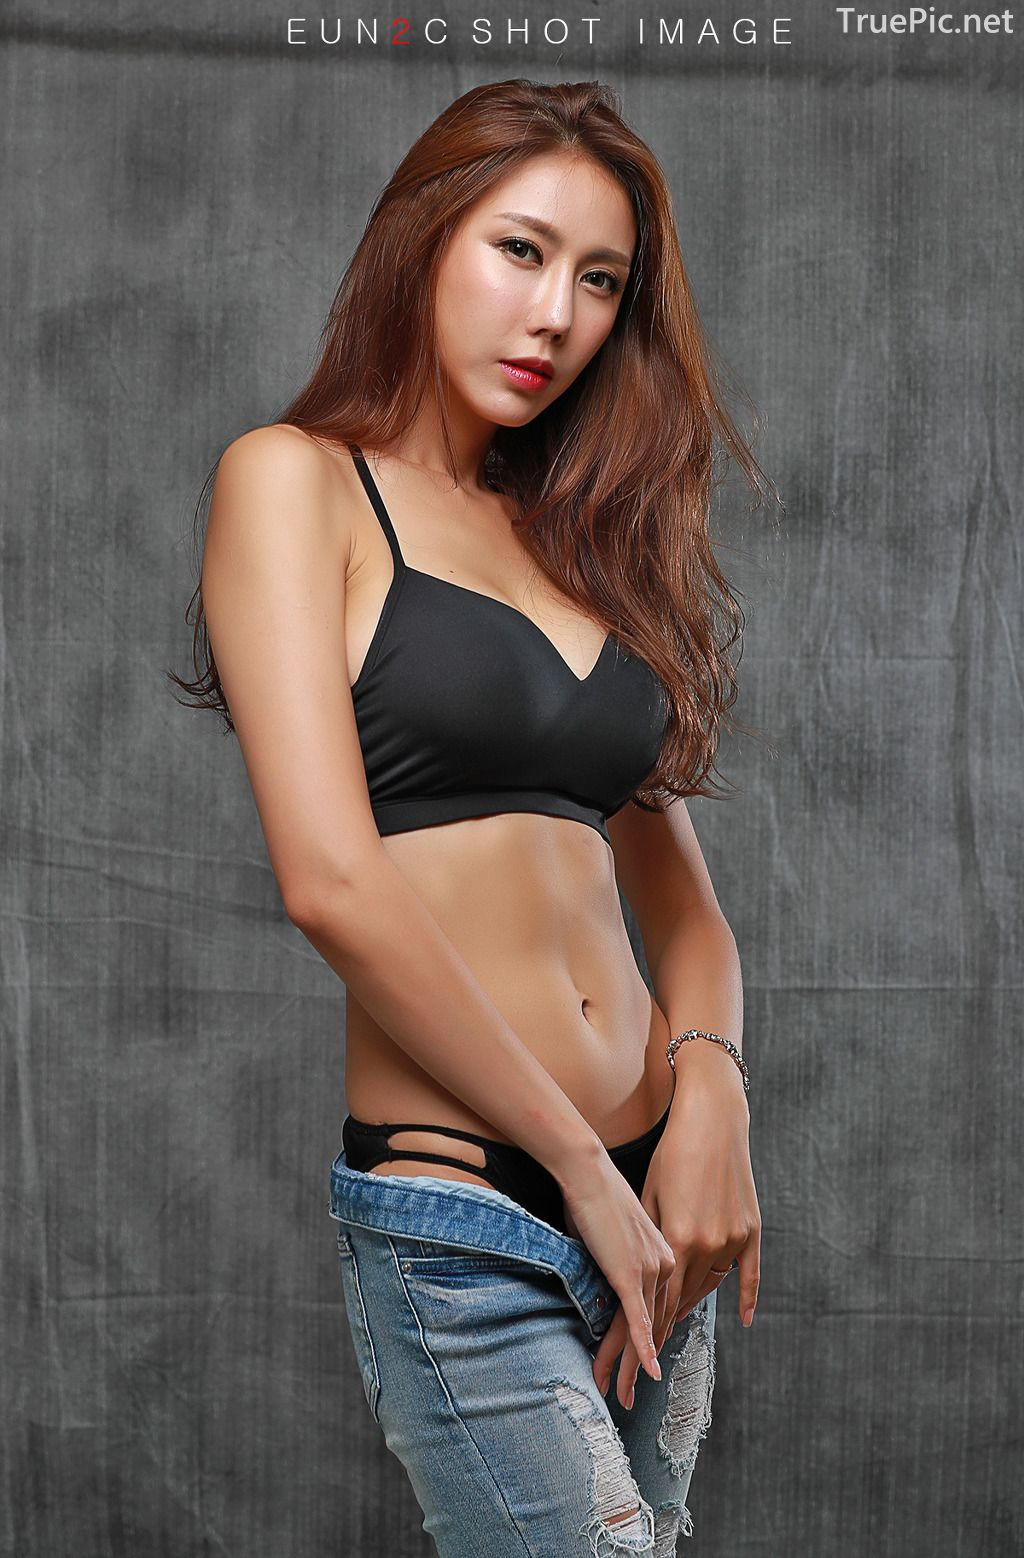 Image-Korean-model-Choi-Ye-Rok-Back-Lingerie-and-Jean-TruePic.net- Picture-3